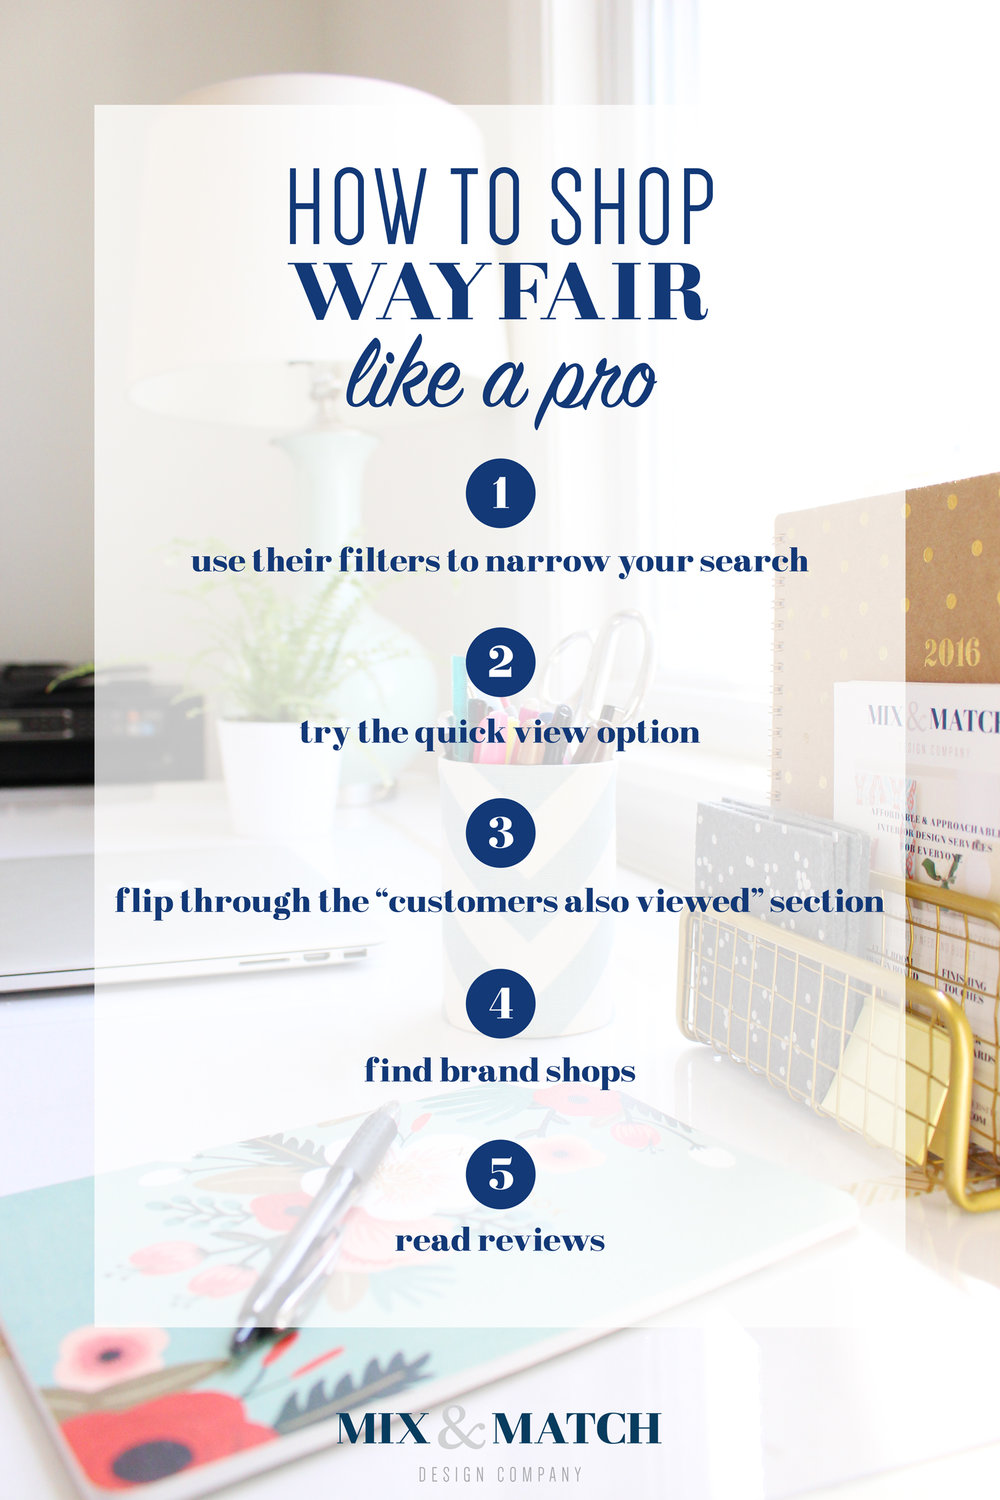 How to shop Wayfair like a pro!